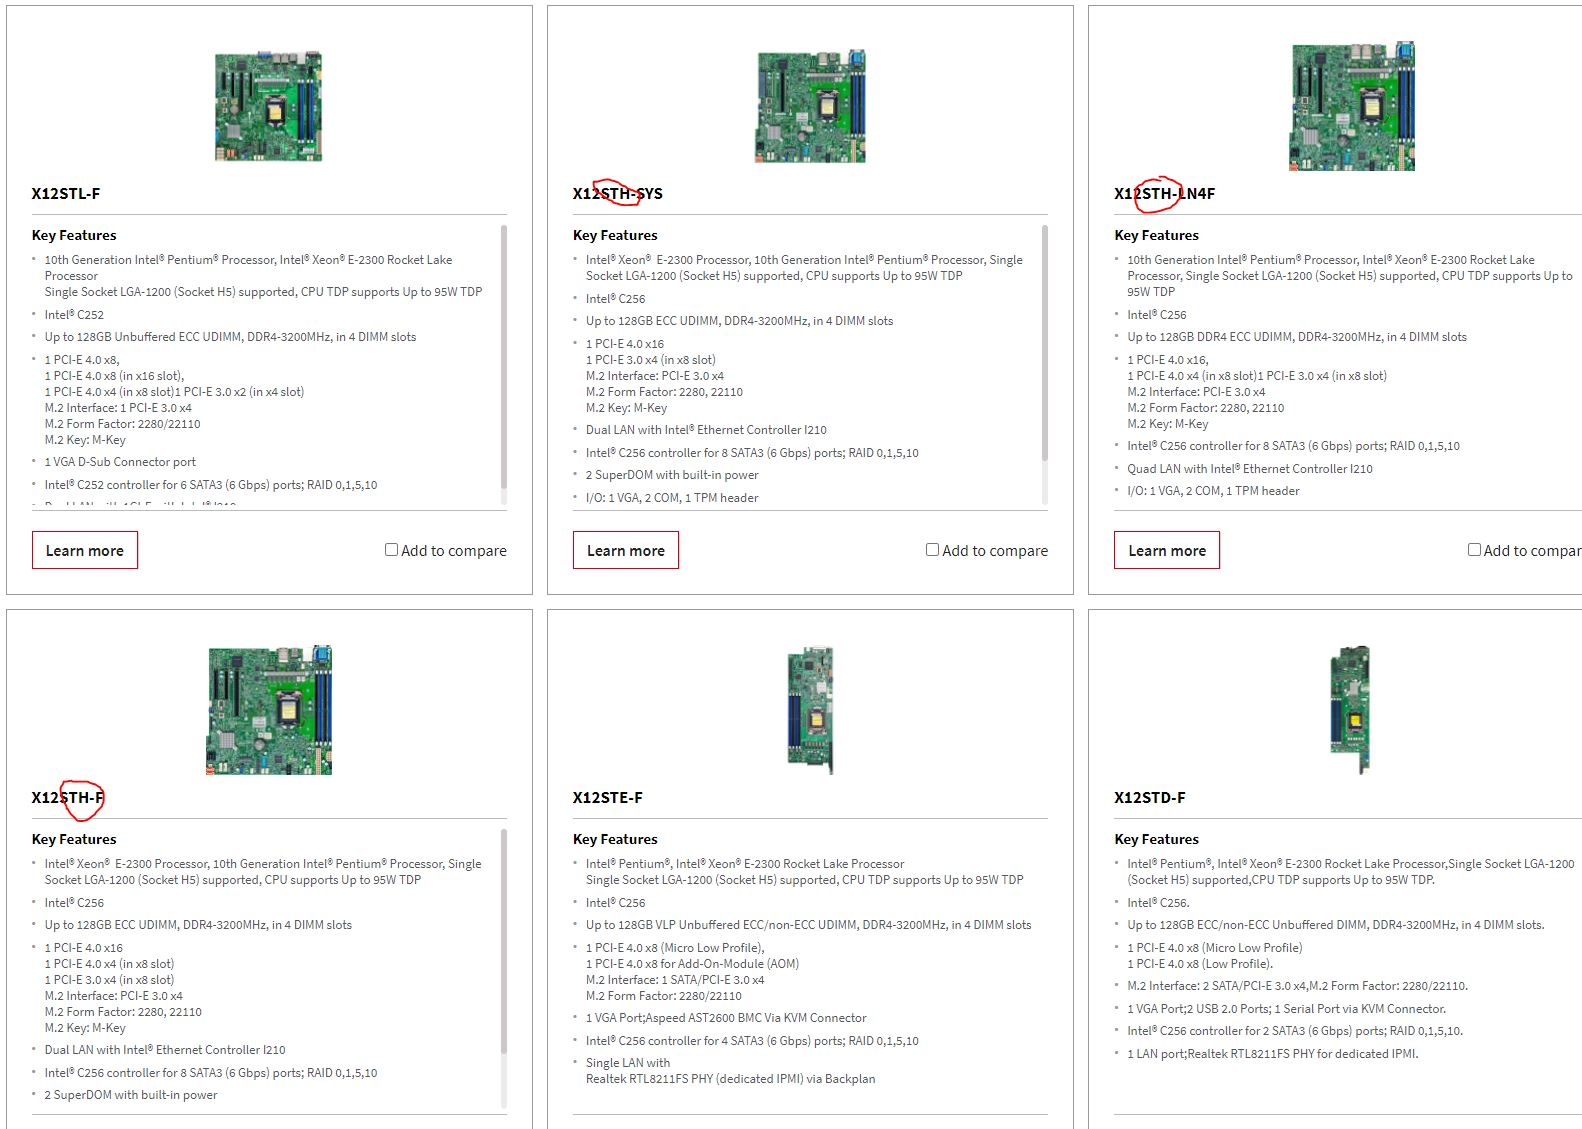 Supermicro X12STH Editions